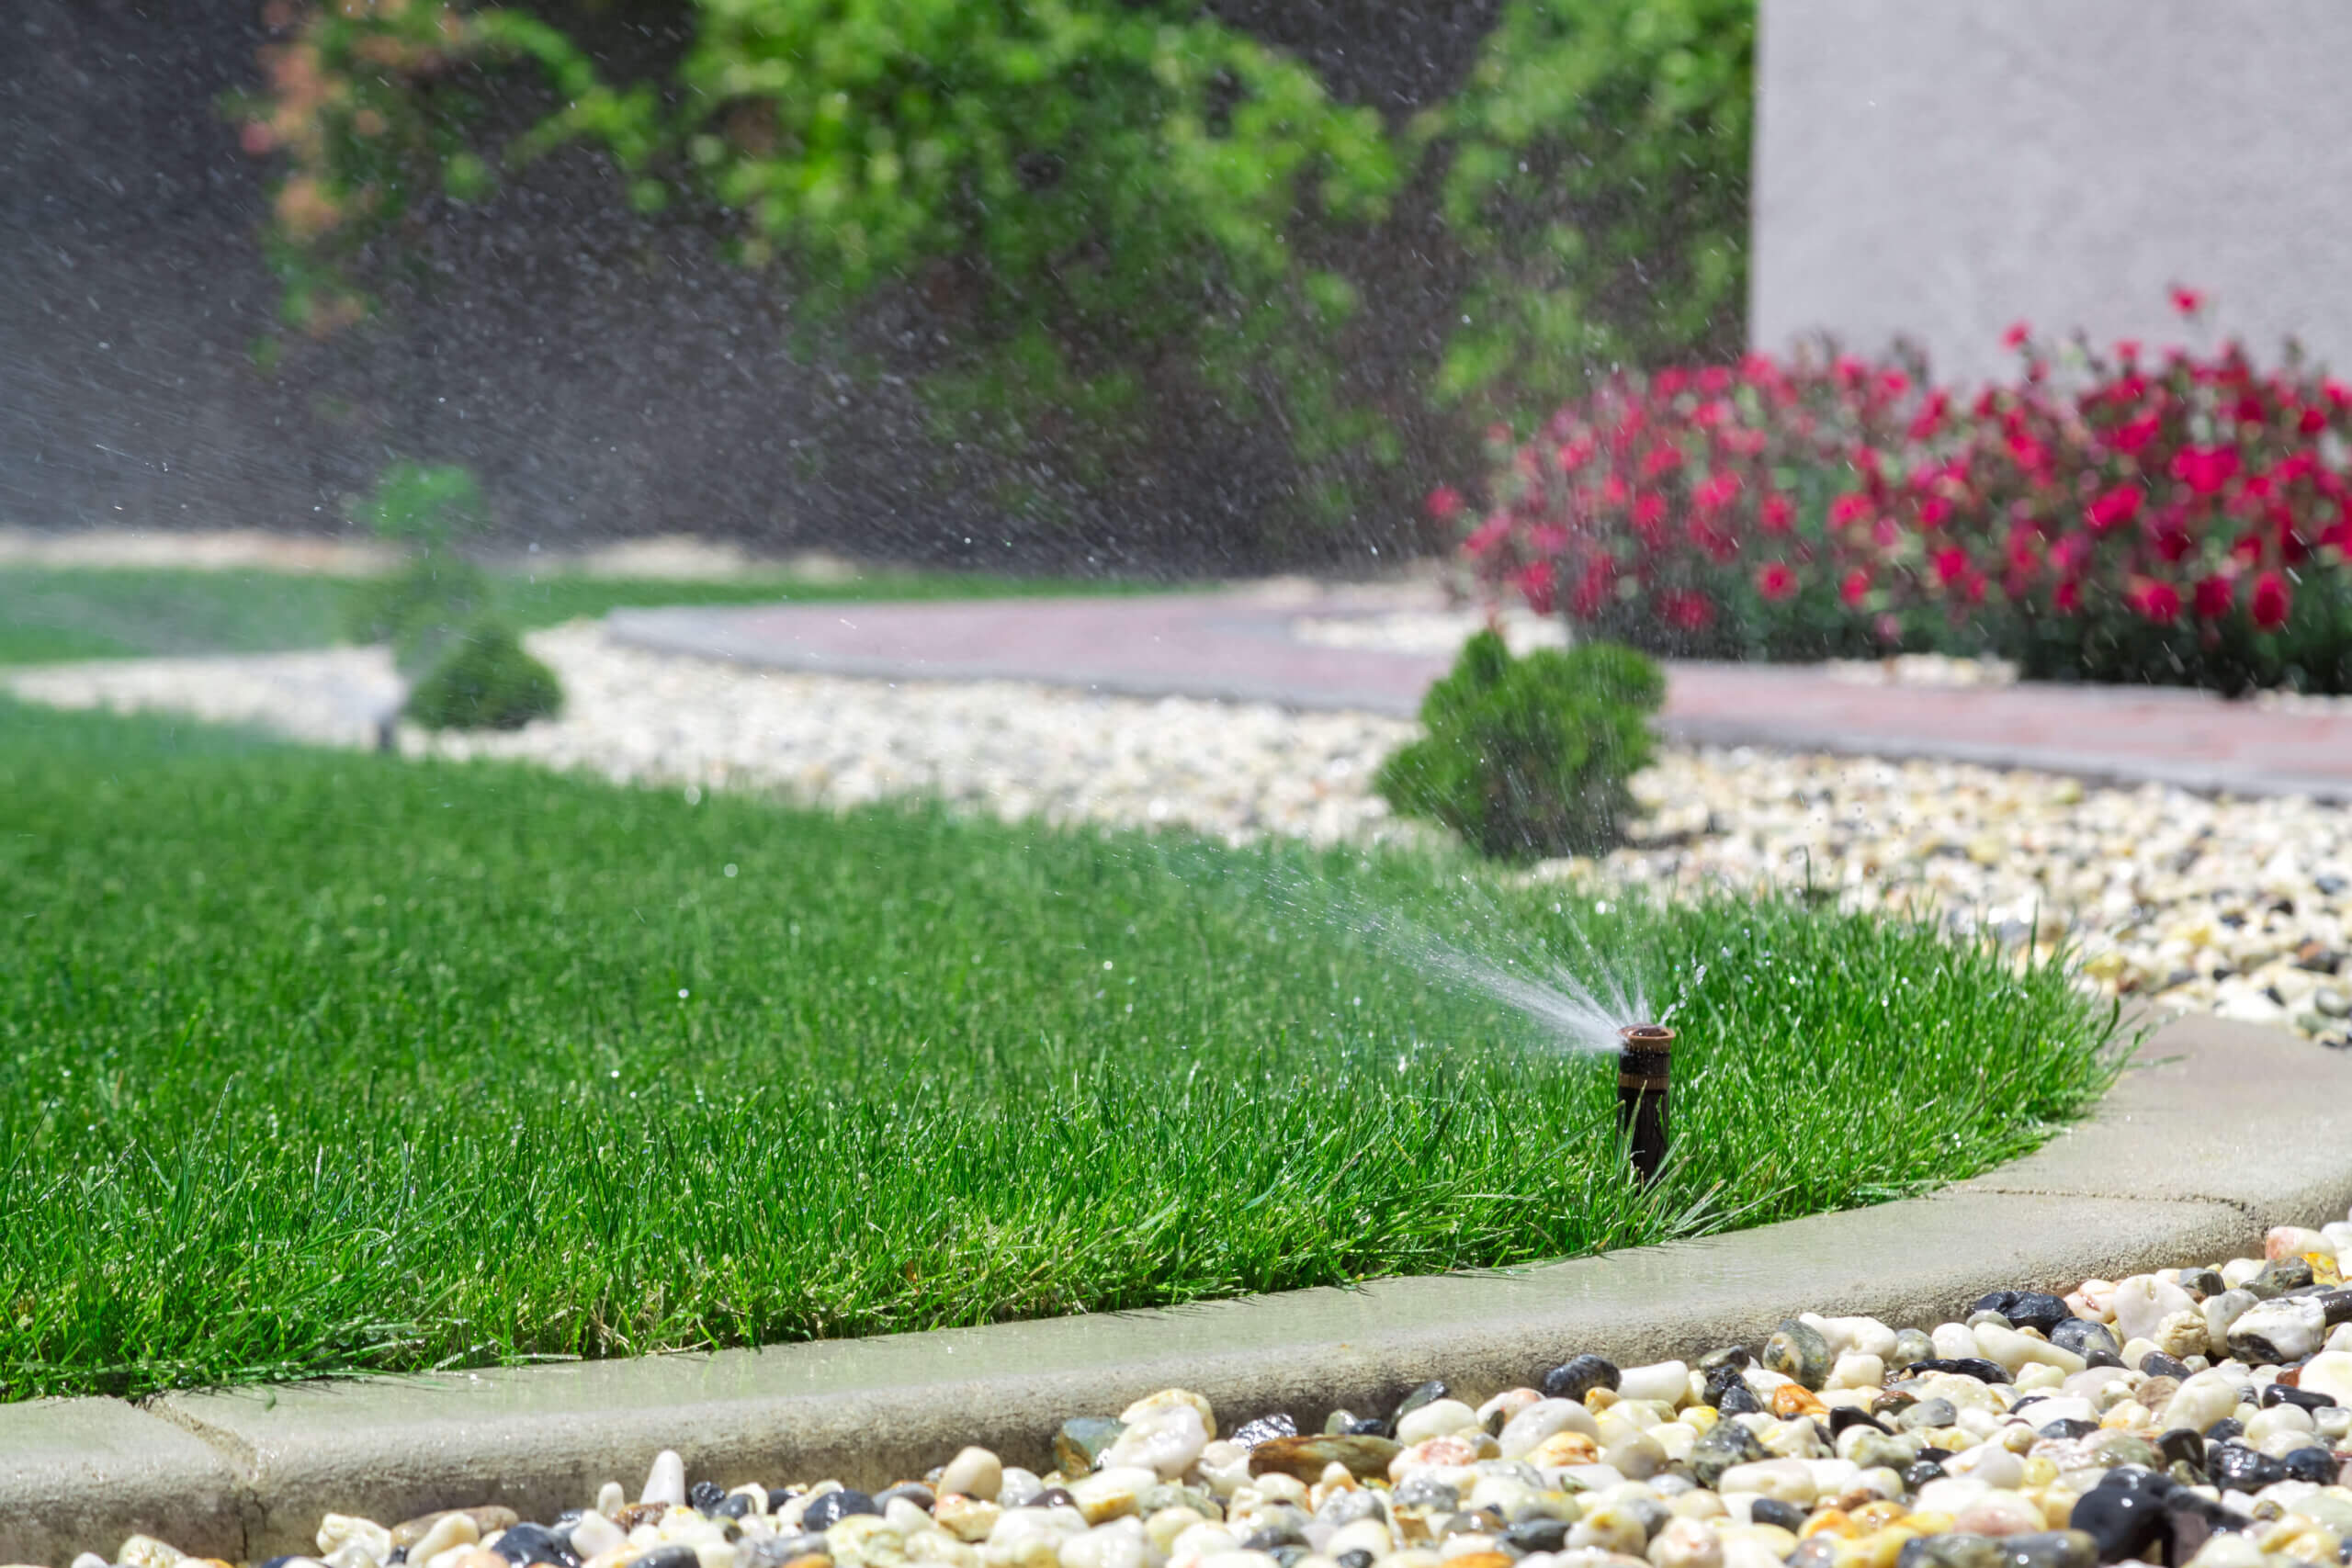 Water irrigation timing in Florida for home lawns.